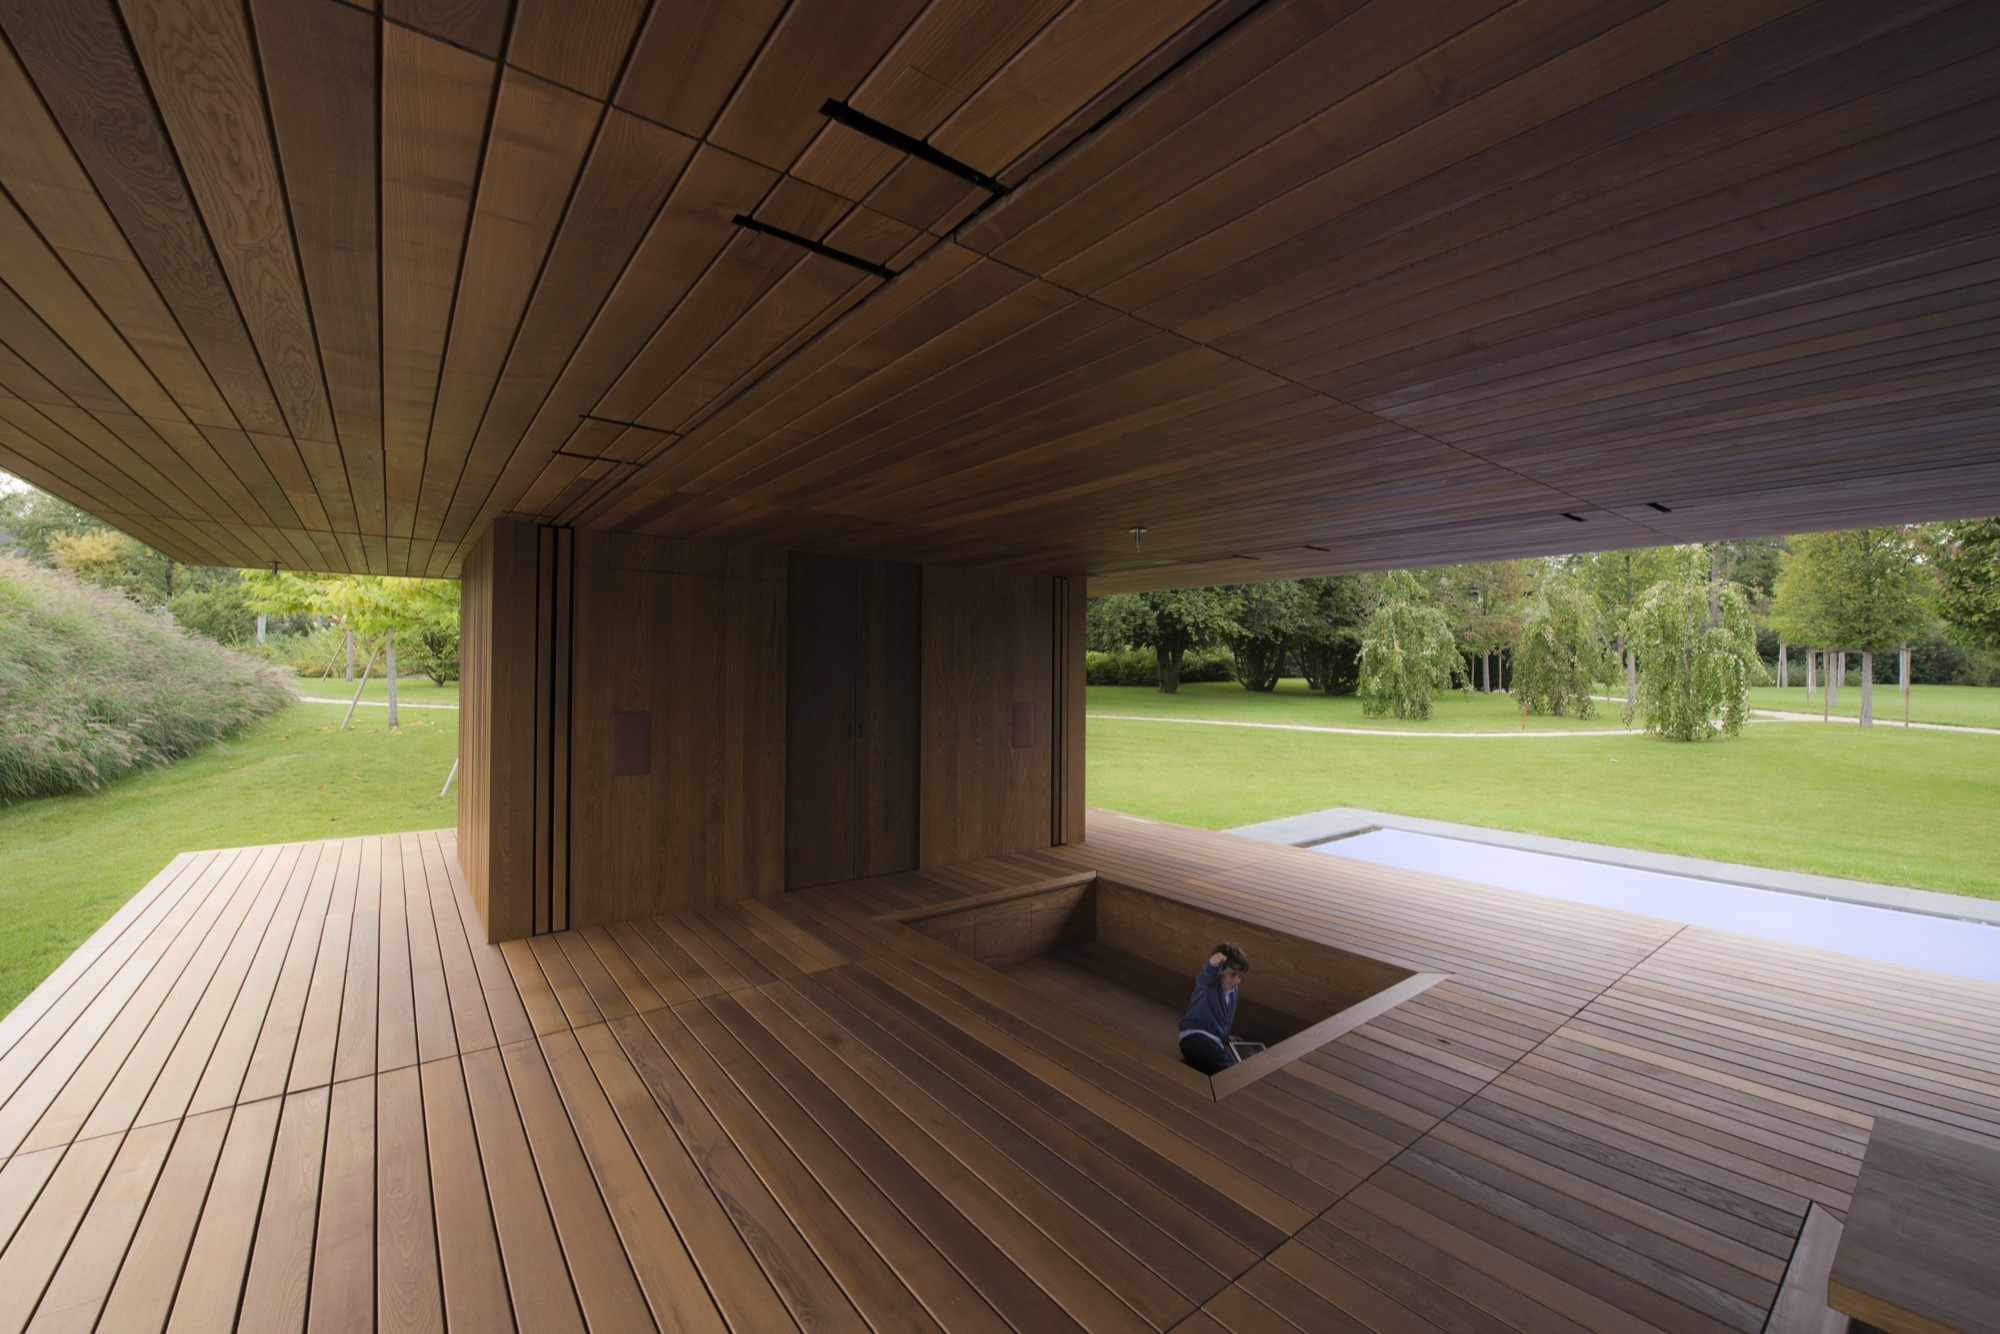 Meditation pavilion garden gmaa archdaily for Garden pavilion designs